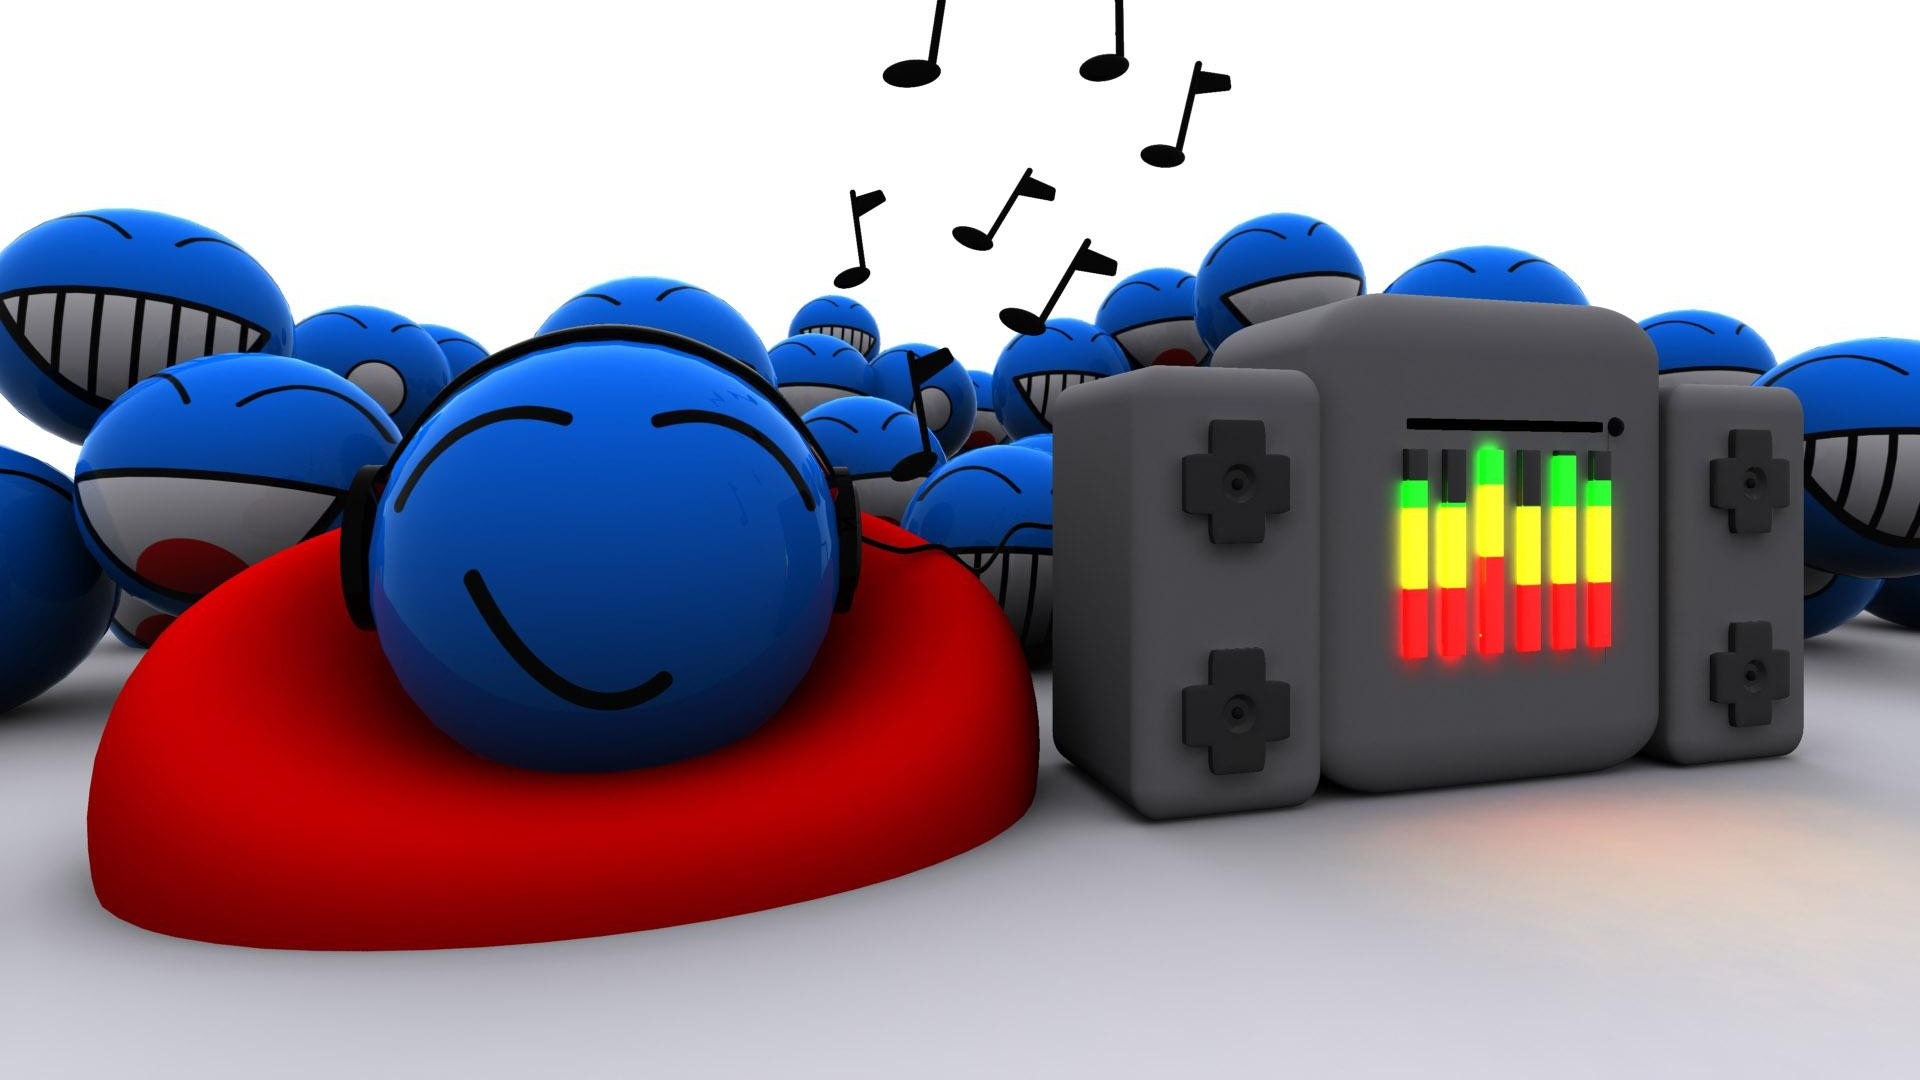 Best Wallpaper Music Bright - music_lovers_music_sound_blue_bright_colorful_14998_1920x1080  Image_798663.jpg